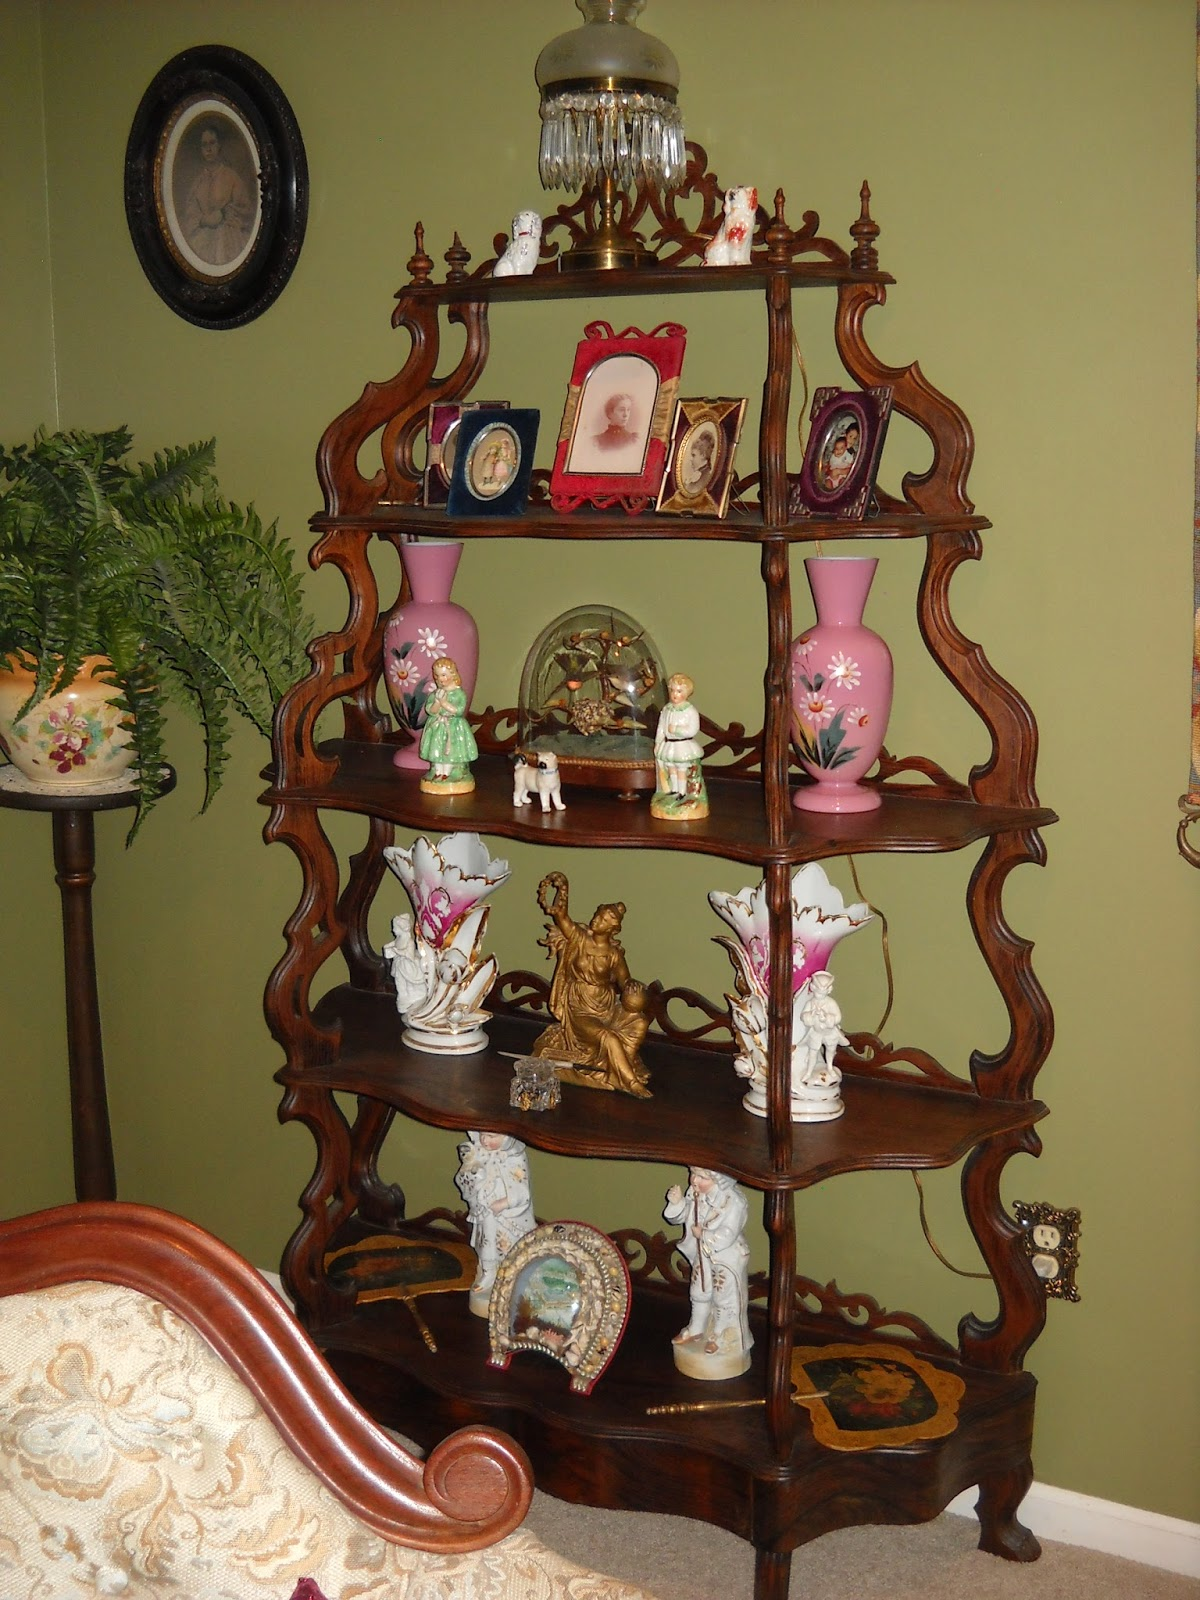 ... What Not Shelf, Sometimes Called An Etegere. Although Etegeres Usually  Are Much More Grander And Fancier With A Mirror And Marble Shelf On The  Bottom.